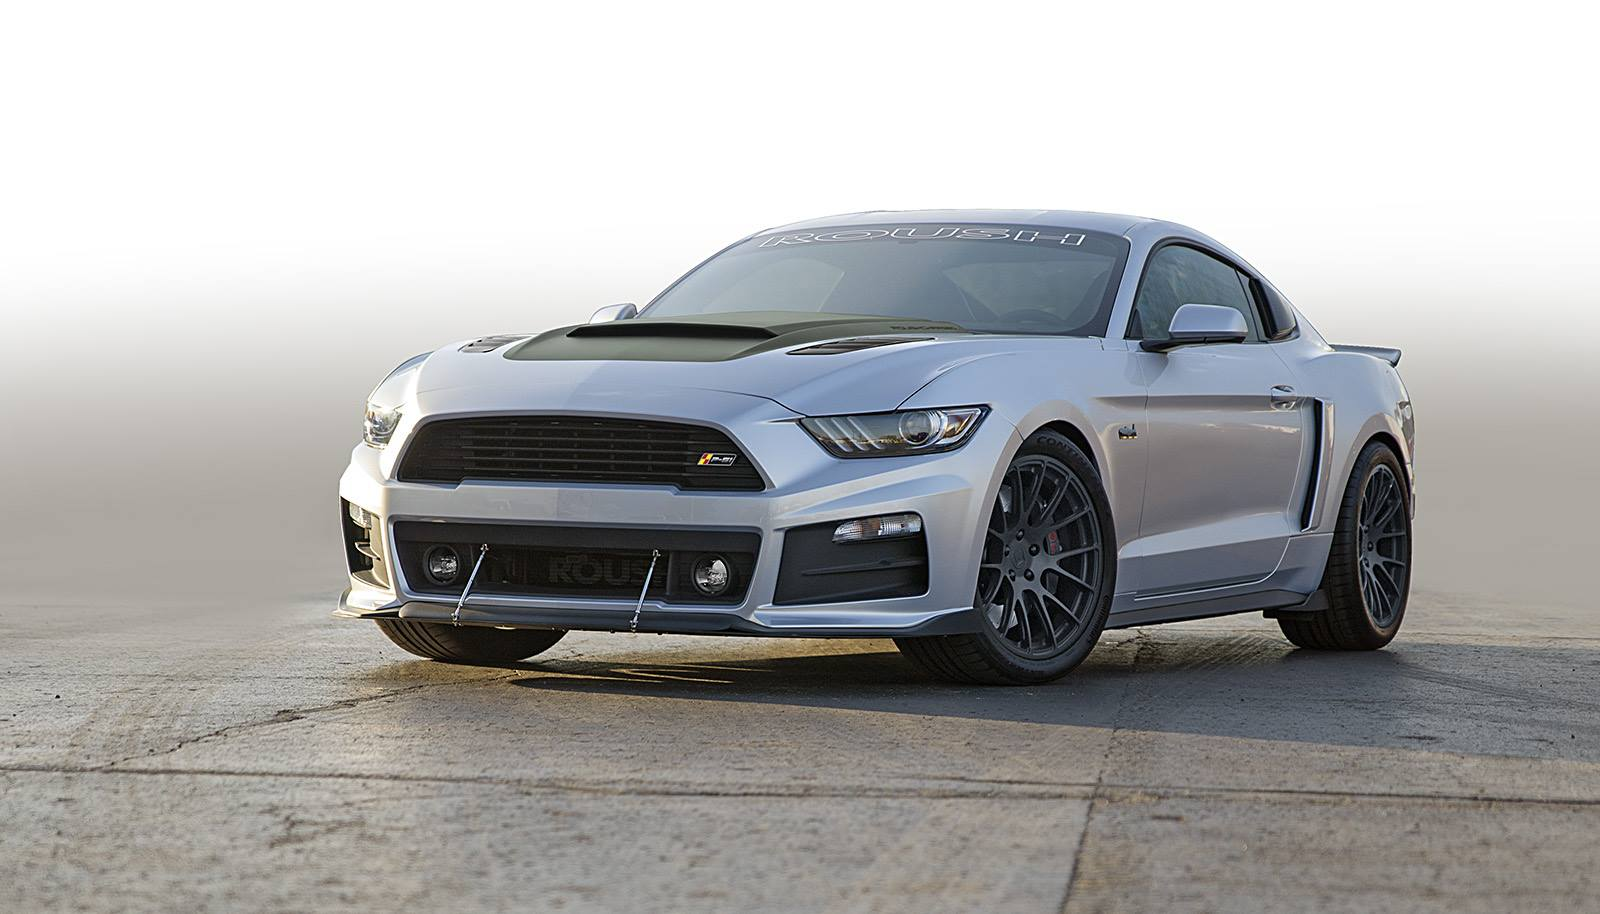 2018 Roush Stage 3 >> Roush P-51 Mustang Packs An Impressive 727 HP